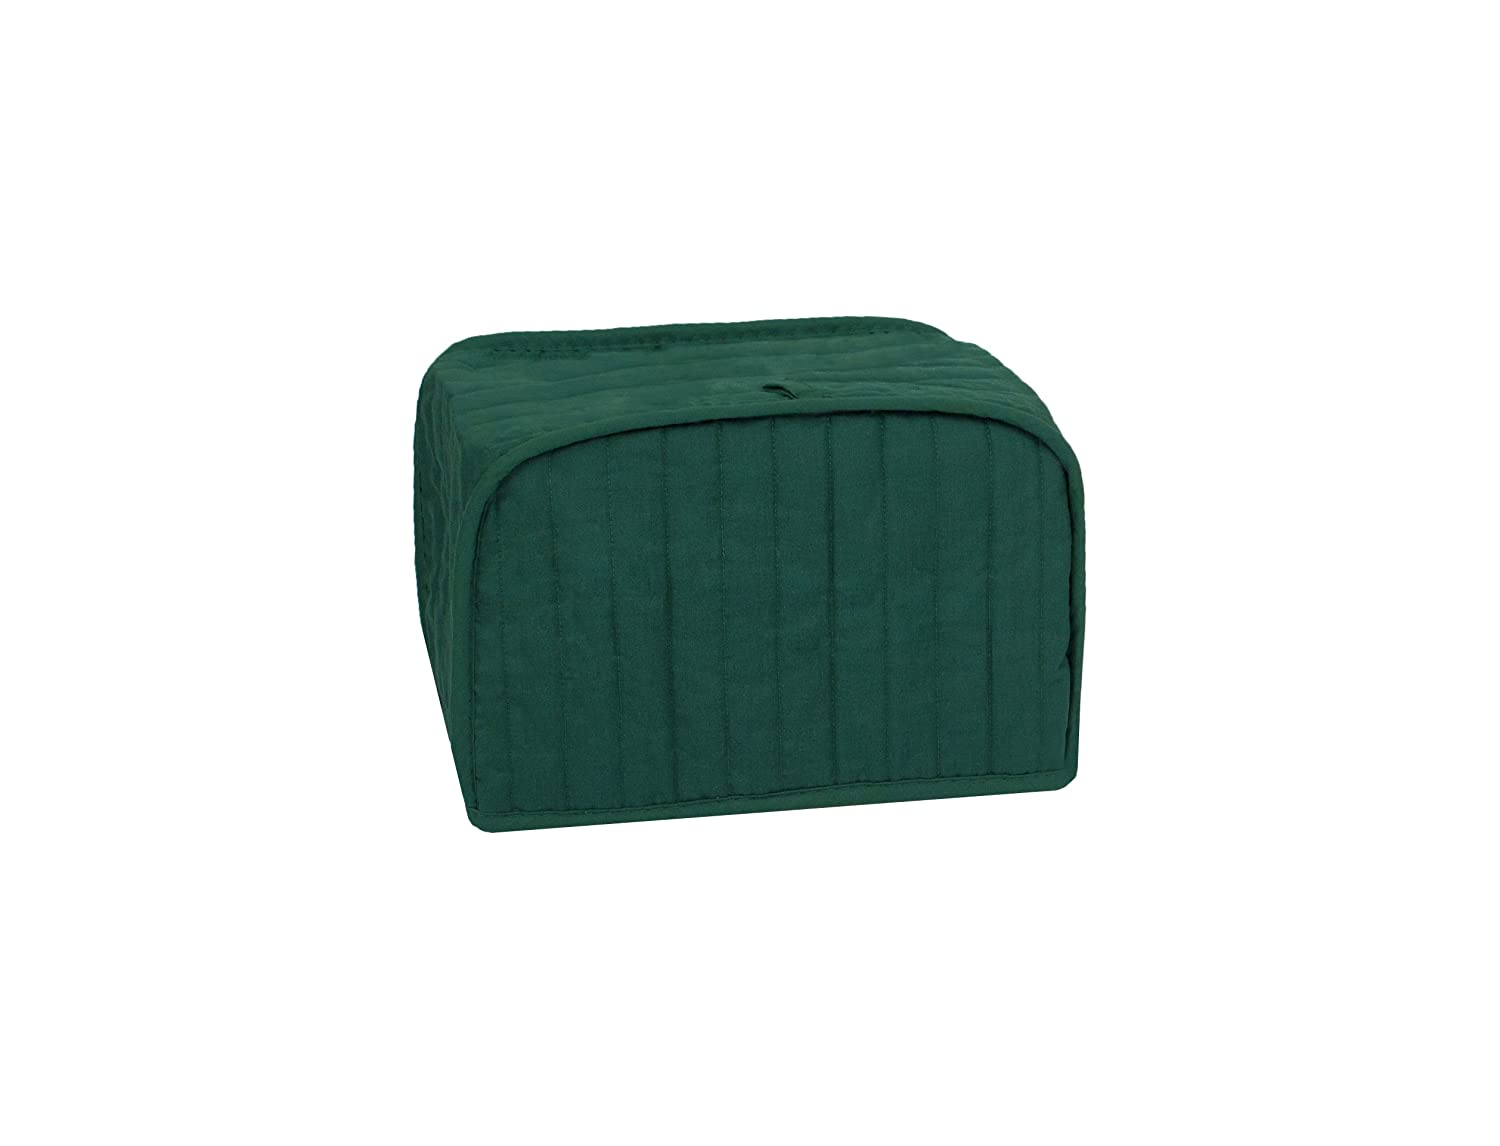 RITZ Polyester / Cotton Quilted Four Slice Toaster Appliance Cover, Dust and Fingerprint Protection, Machine Washable, Dark Green